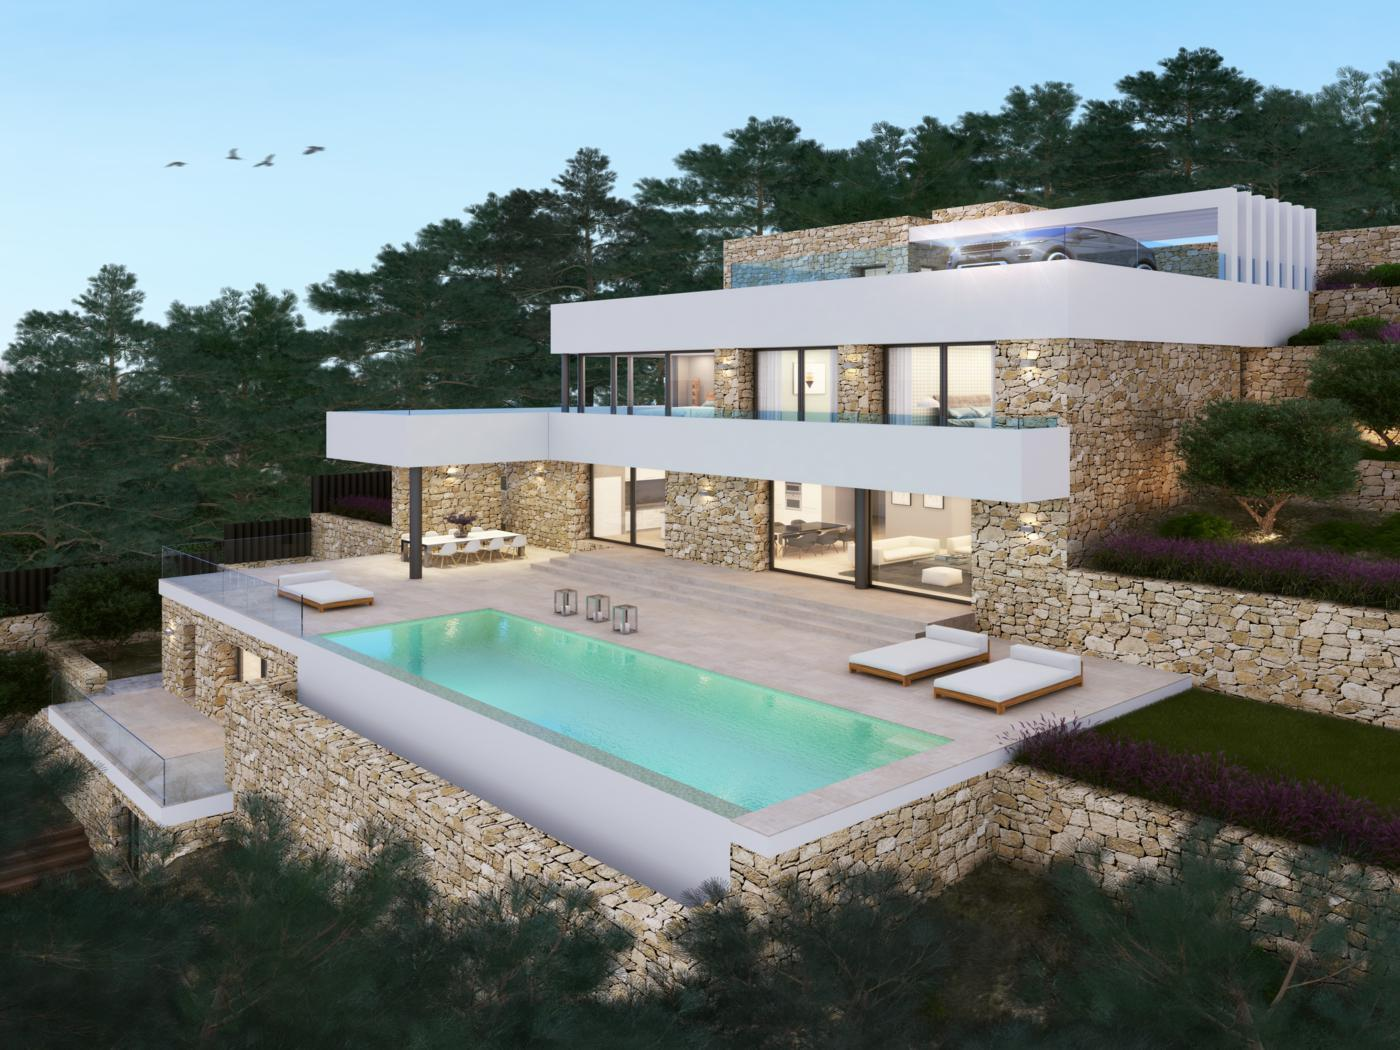 Fotogallerij - 1 - Exceptional homes in the Costa Blanca. Unparalleled Service. Exceptional properties in the Costa Blanca